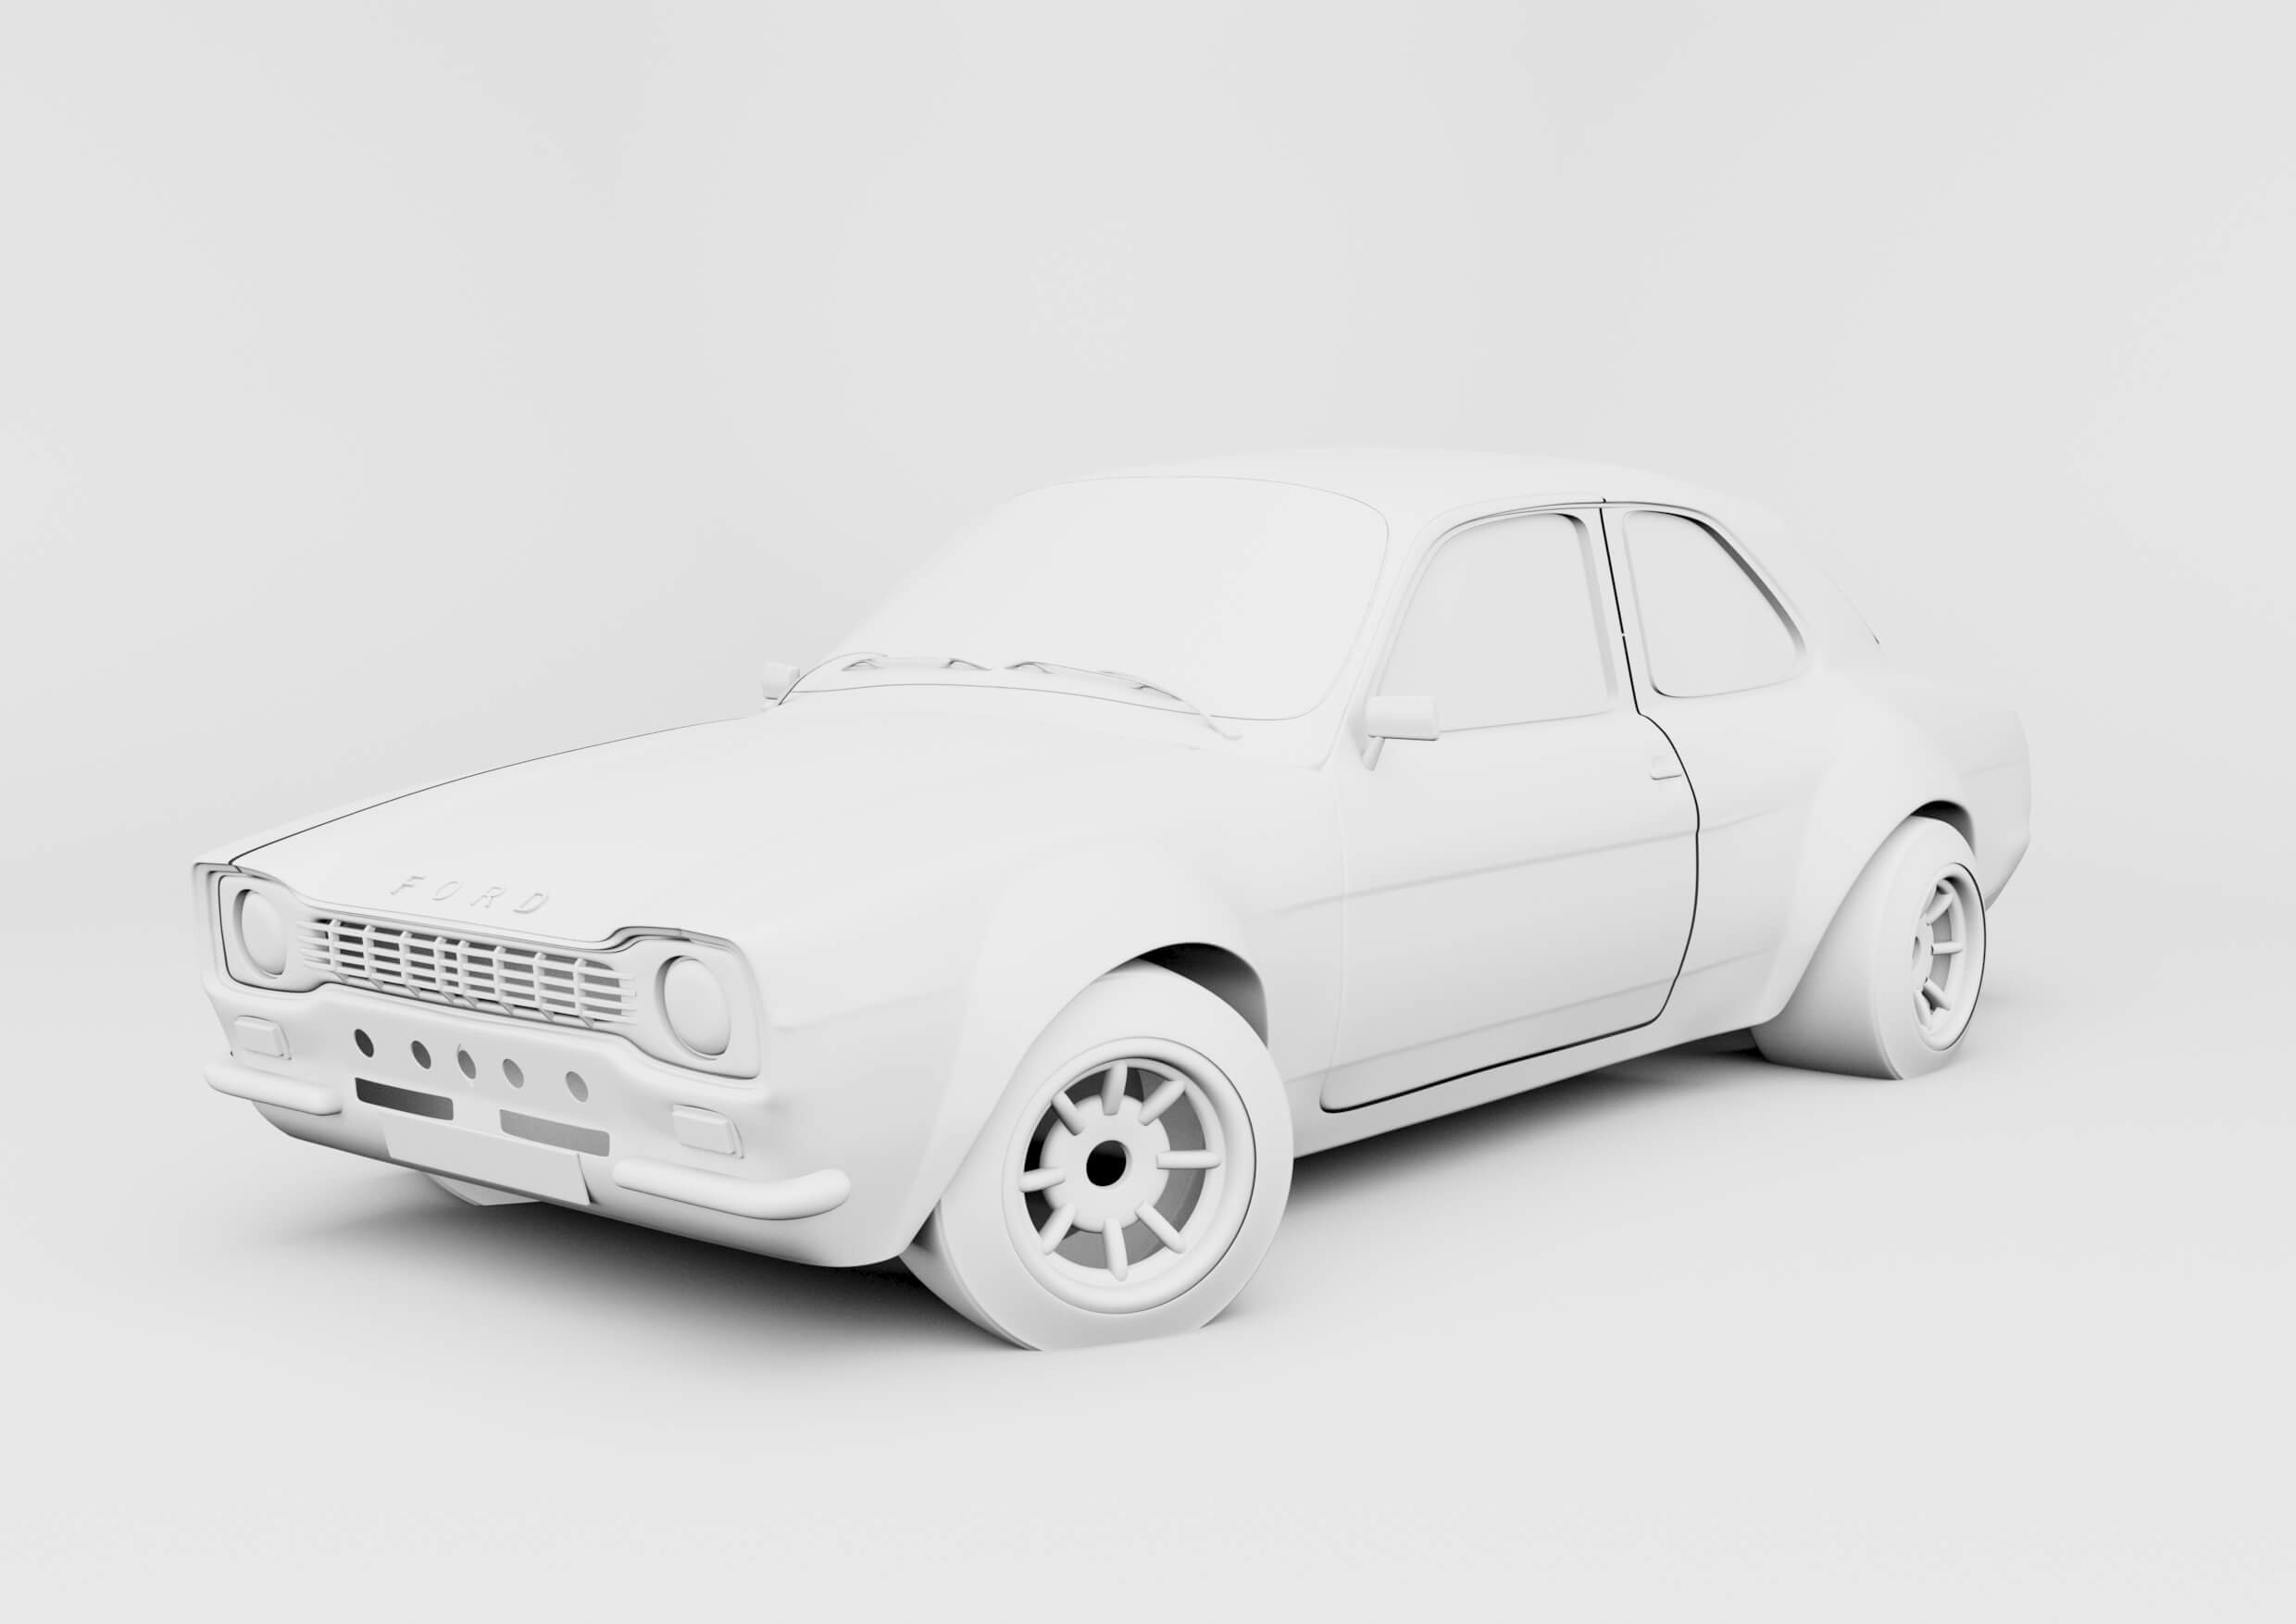 Ford Escort Ambient Occlusion